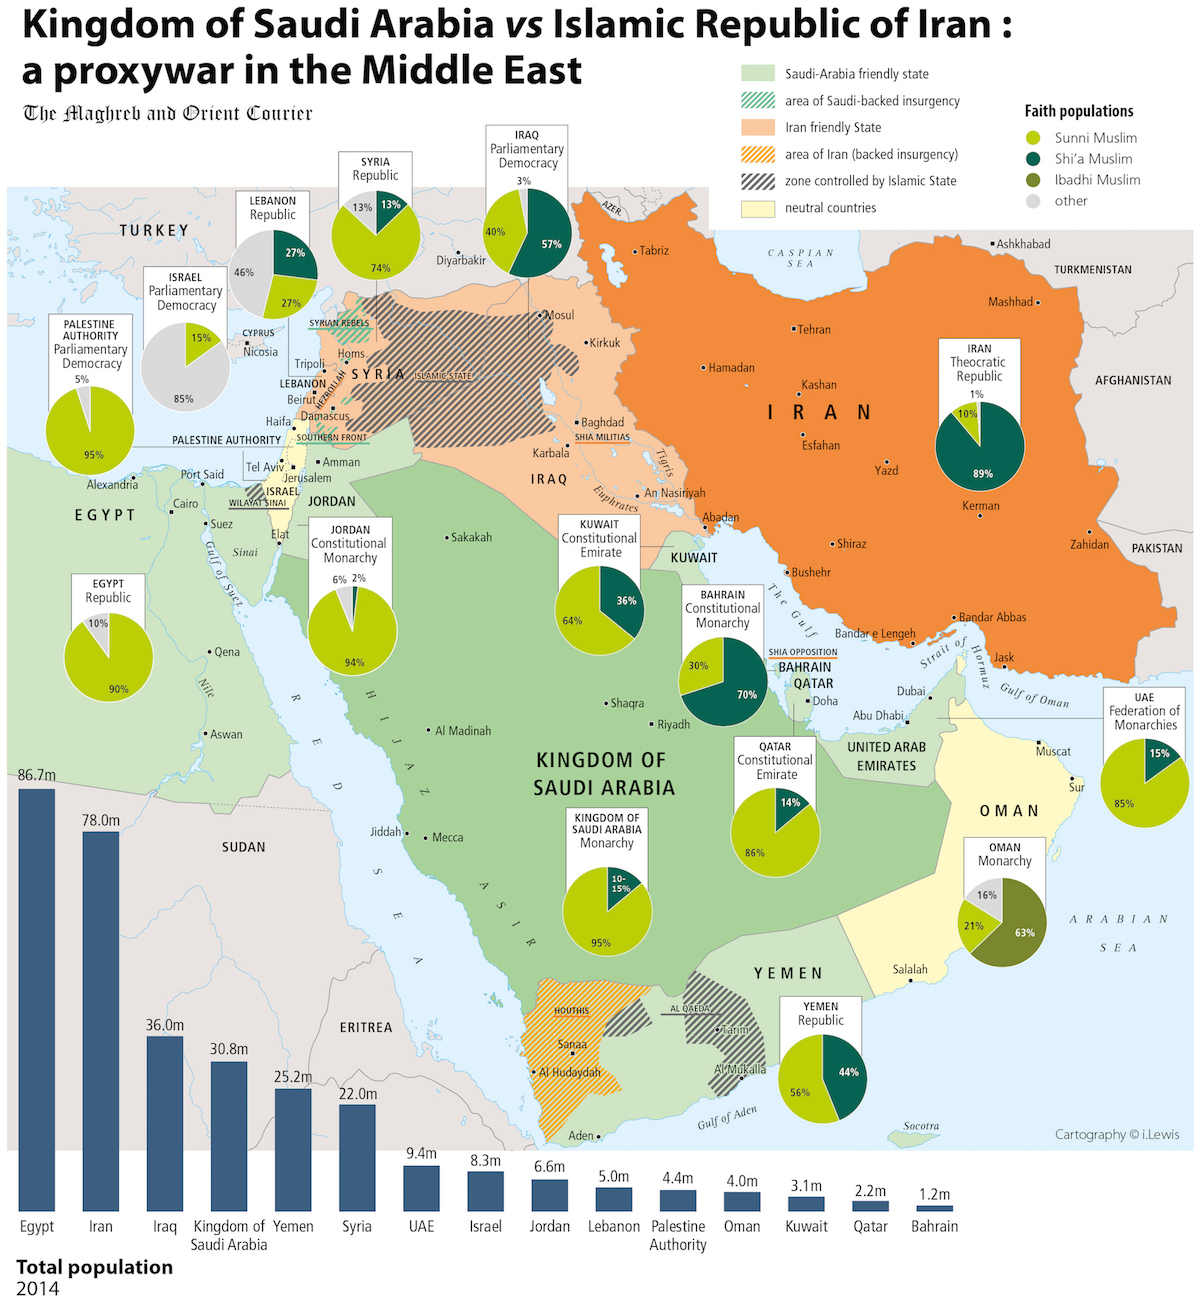 proxy-war-in-middle-east-cmo - Proxy War in the Middle East - MPC Journal Hakim Khatib